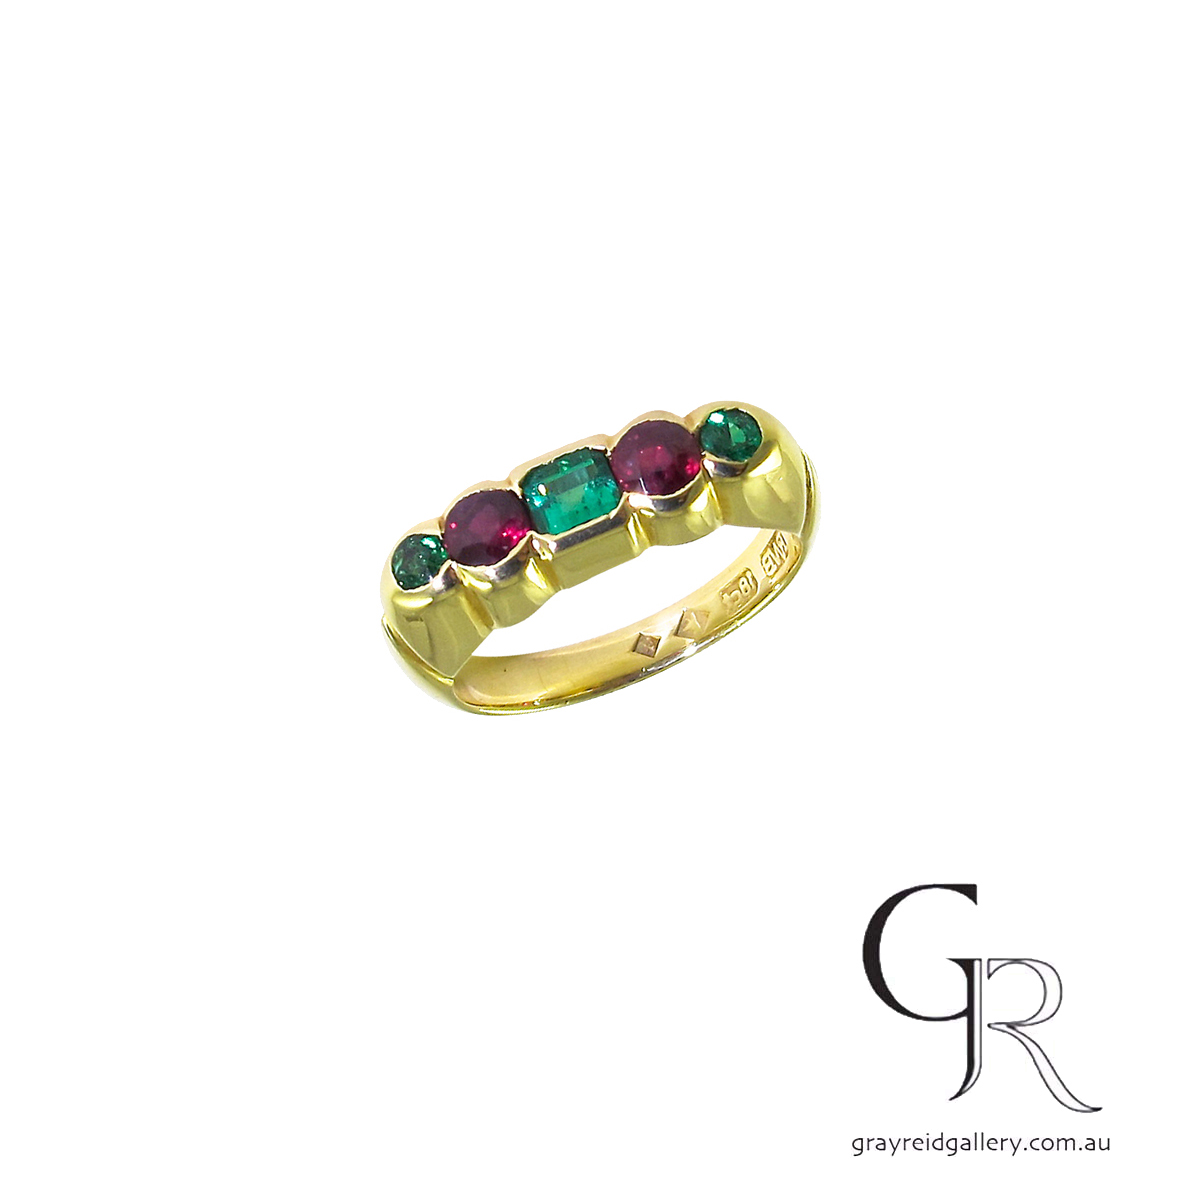 tsavorite and garnet ring paul bott melbourne gray reid gallery.jpg